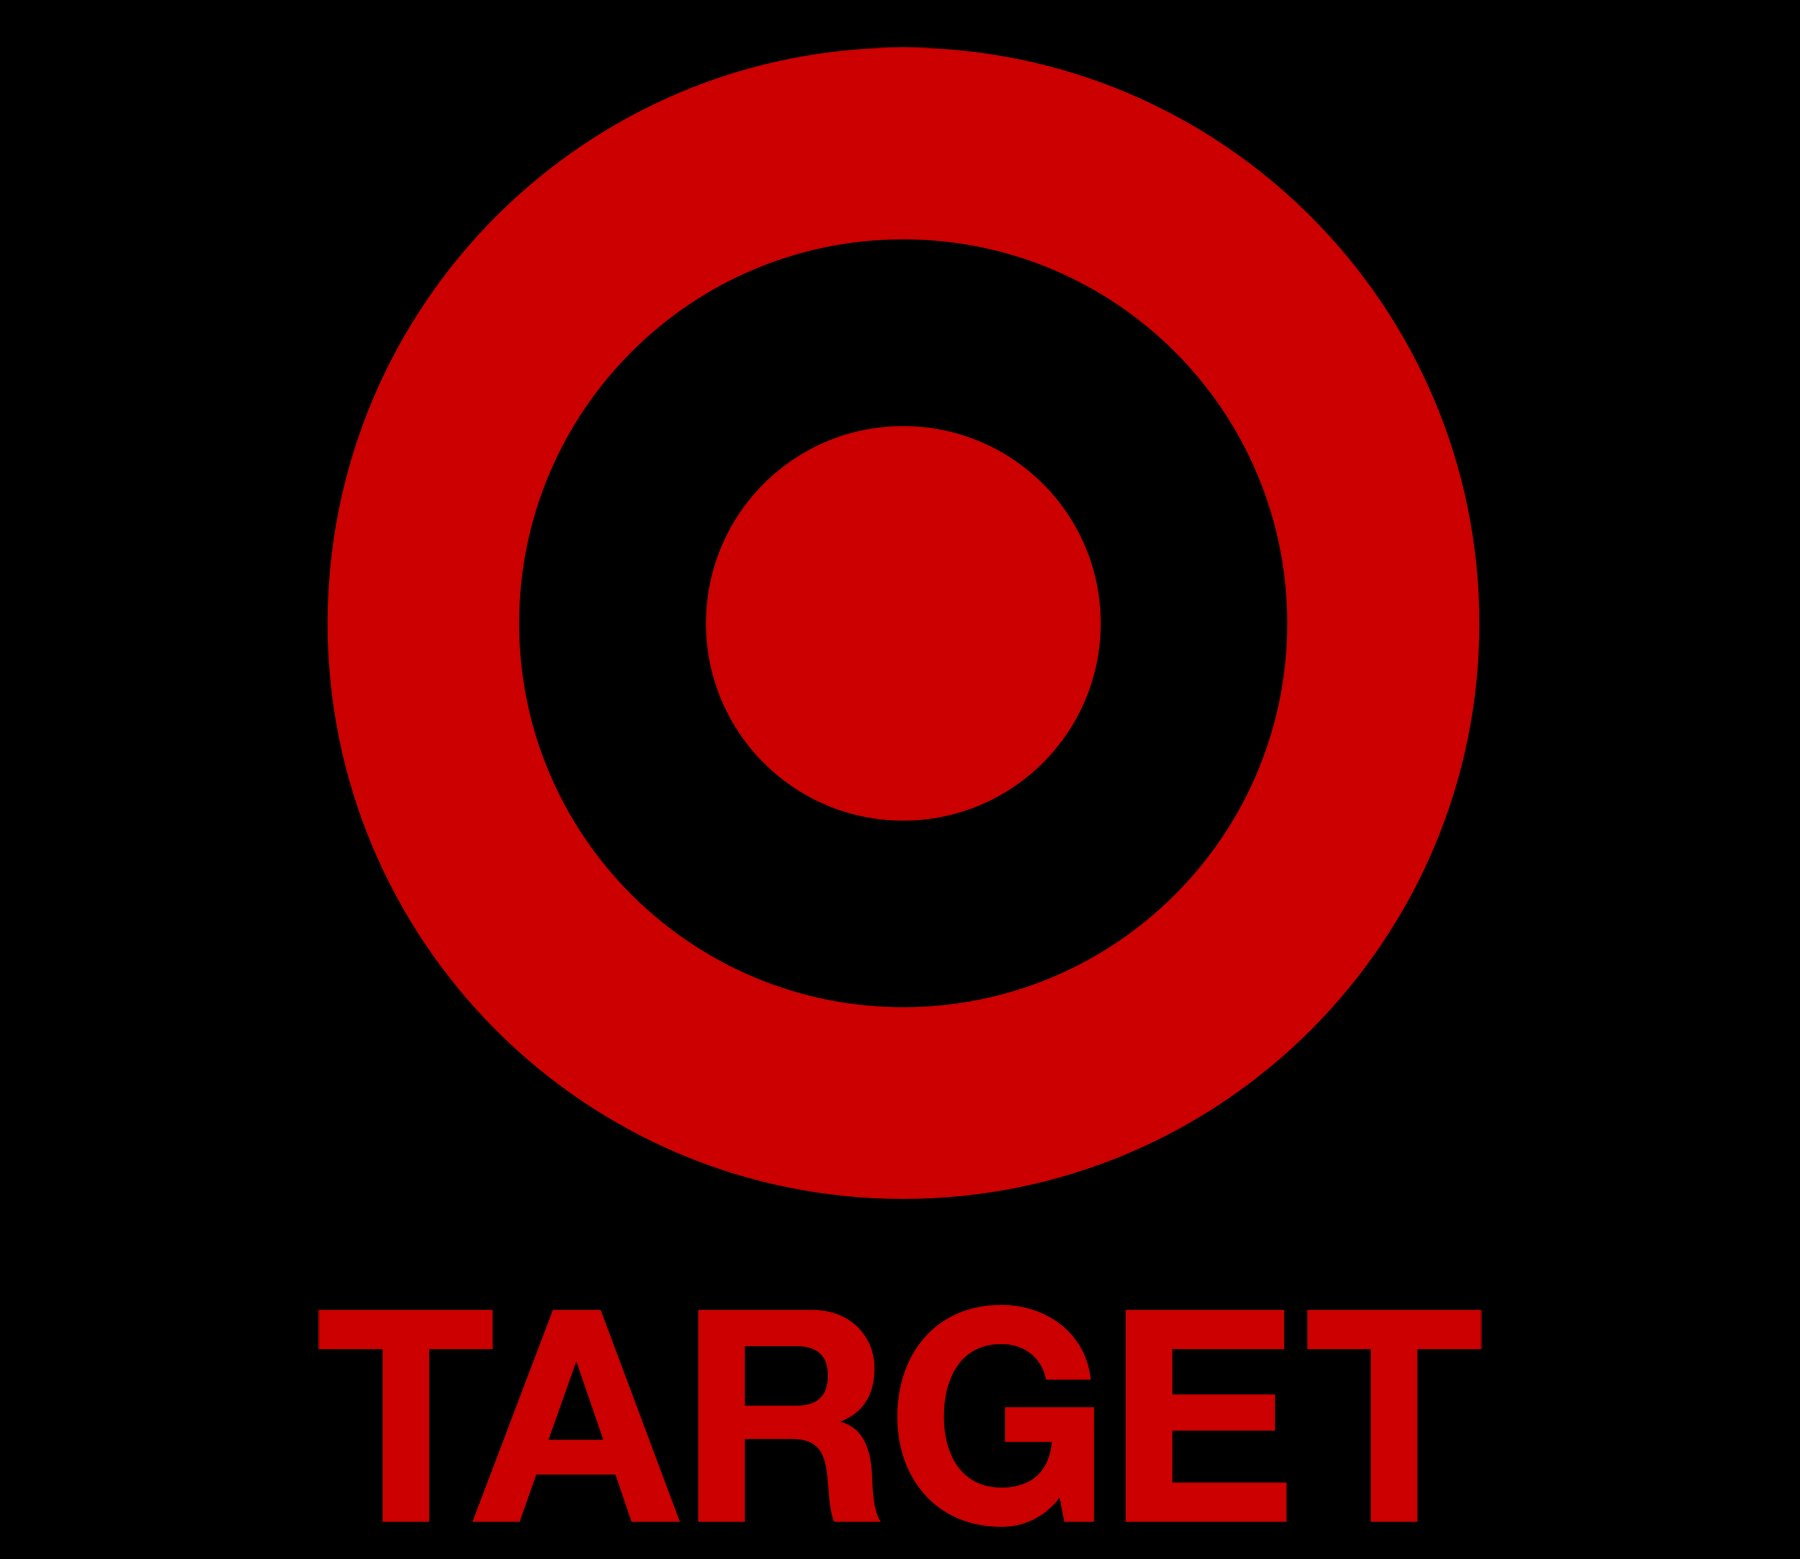 target background and history Target corporation: target corporation, american mass-market retail company operating large-scale food and general-merchandise discount stores it is one of the largest discount retailers in the united states, and its red bull's-eye logo is familiar throughout the country.